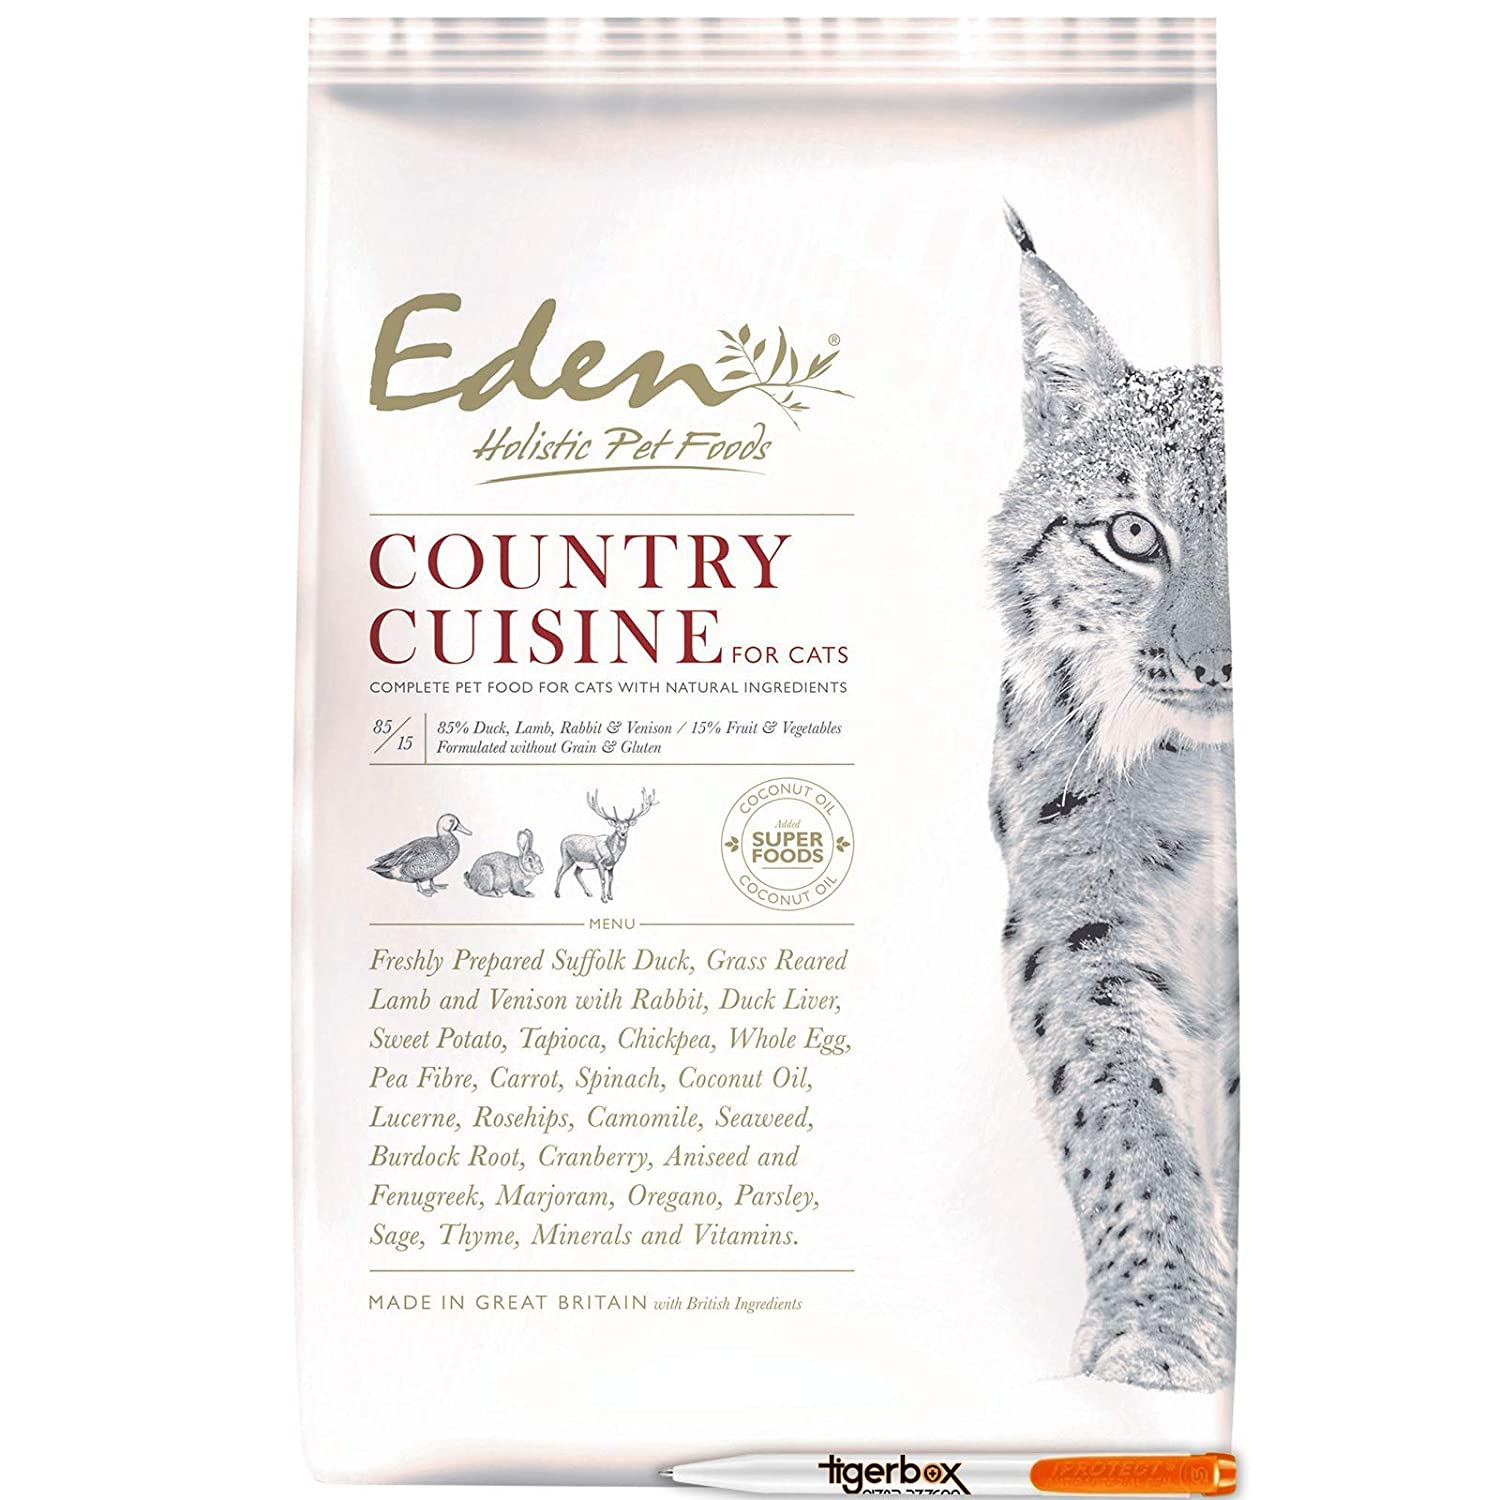 4KG 4KG Eden 85 15 Country Cuisine Dry Cat Food Suitable for Kittens, Adult and Senior Cats AND Tigerbox® Antibacterial Pen